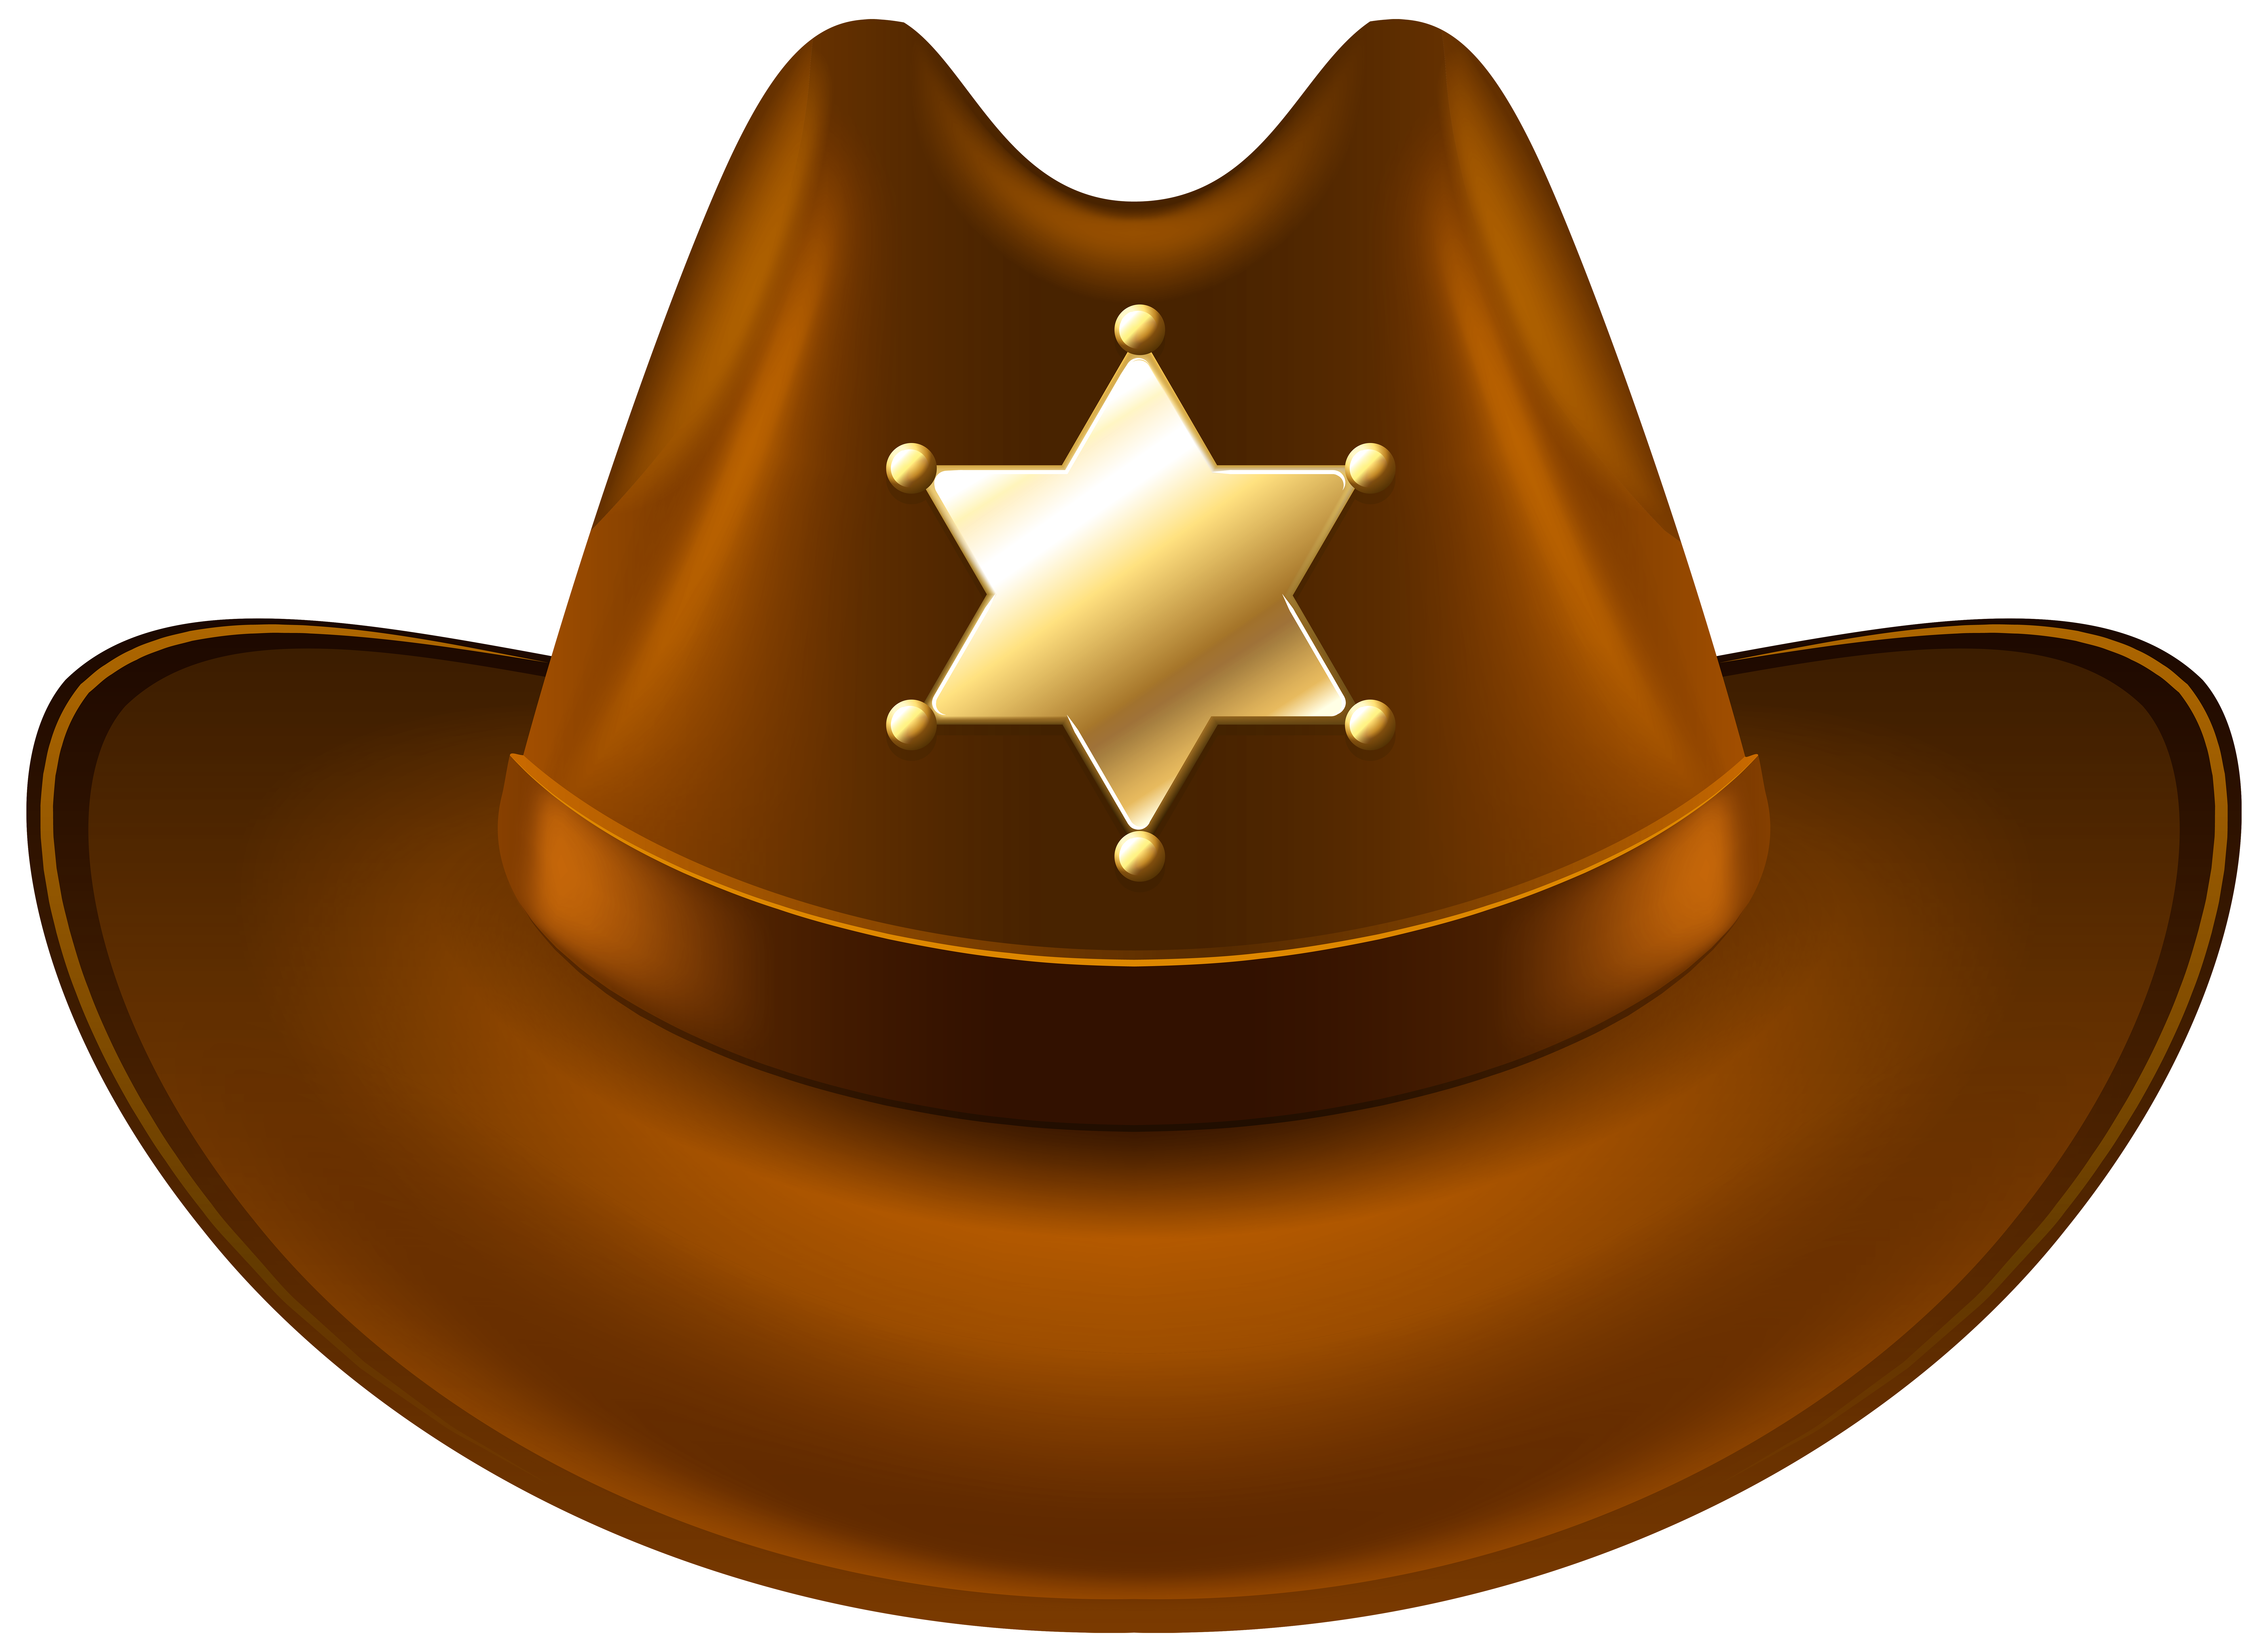 Hat clipart transparent background. Cowboy with sheriff badge